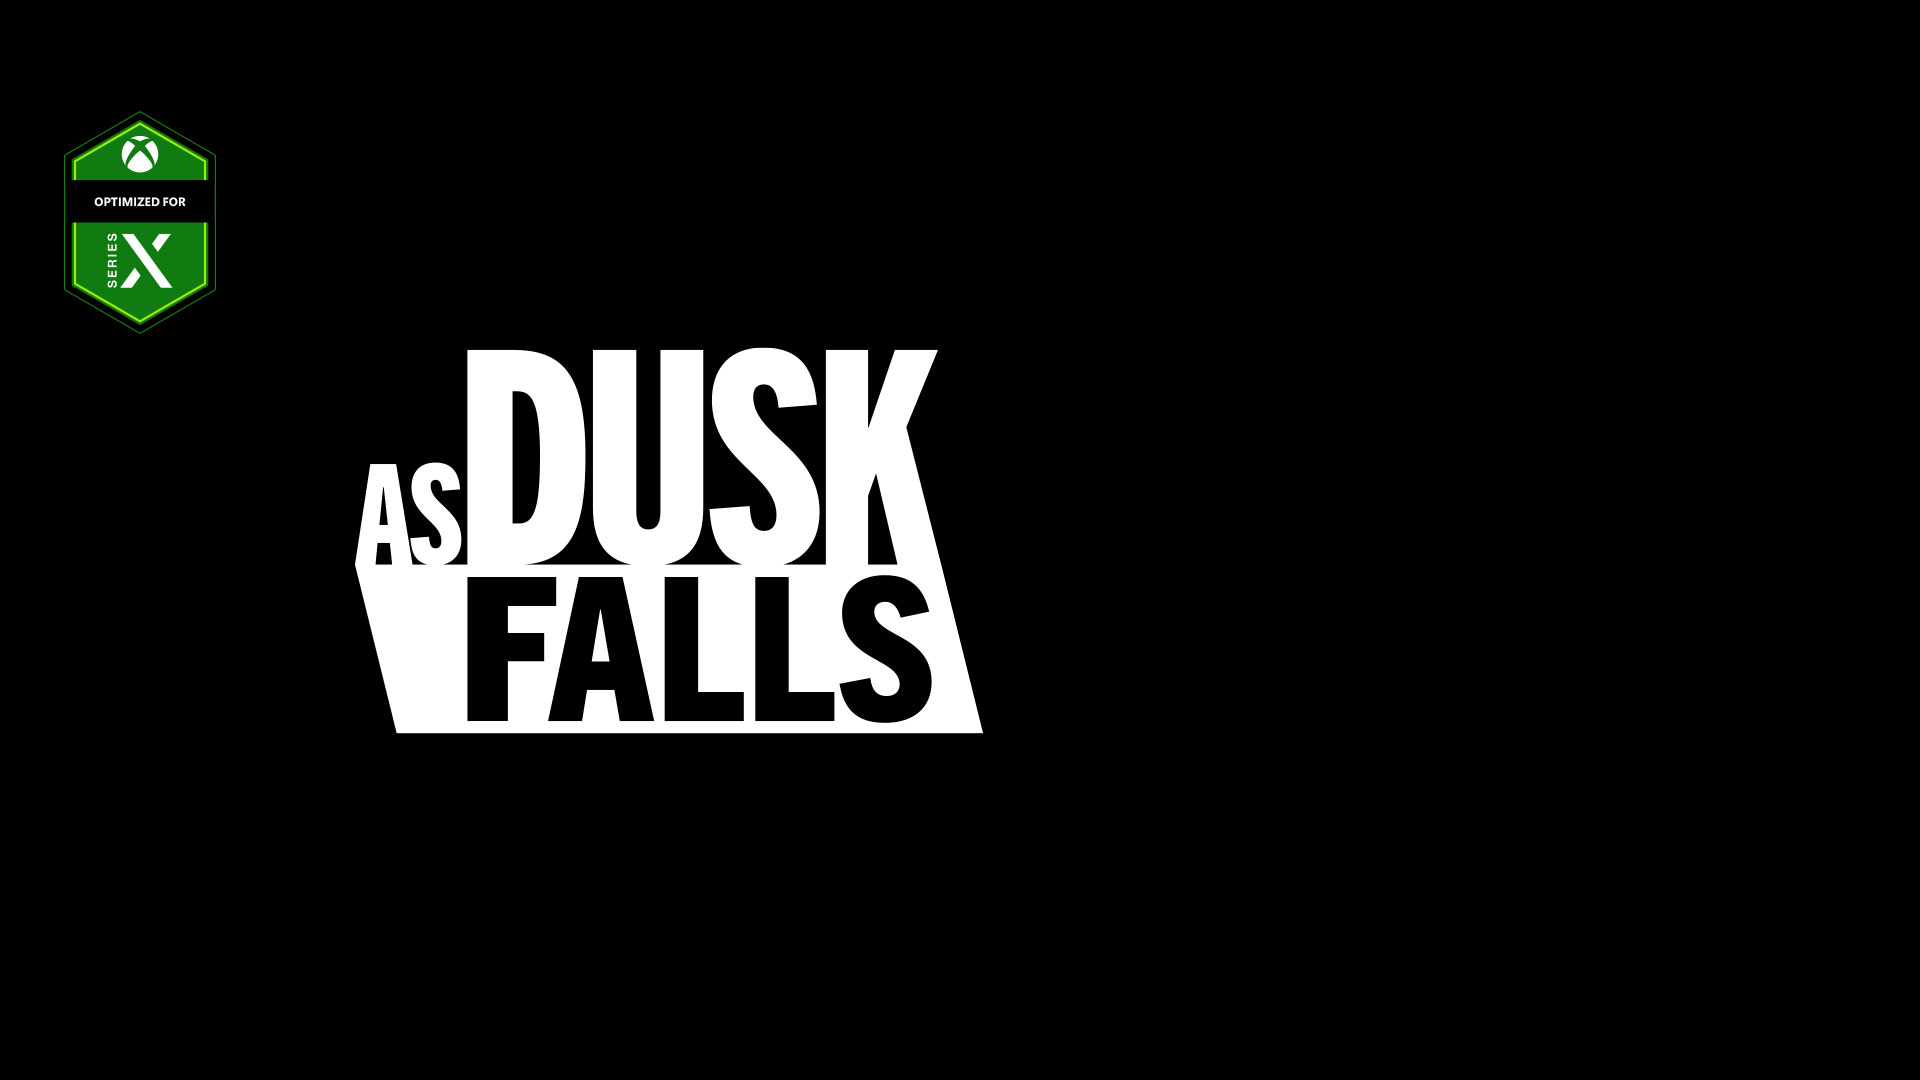 Optimized for Series X logo, As Dusk Falls